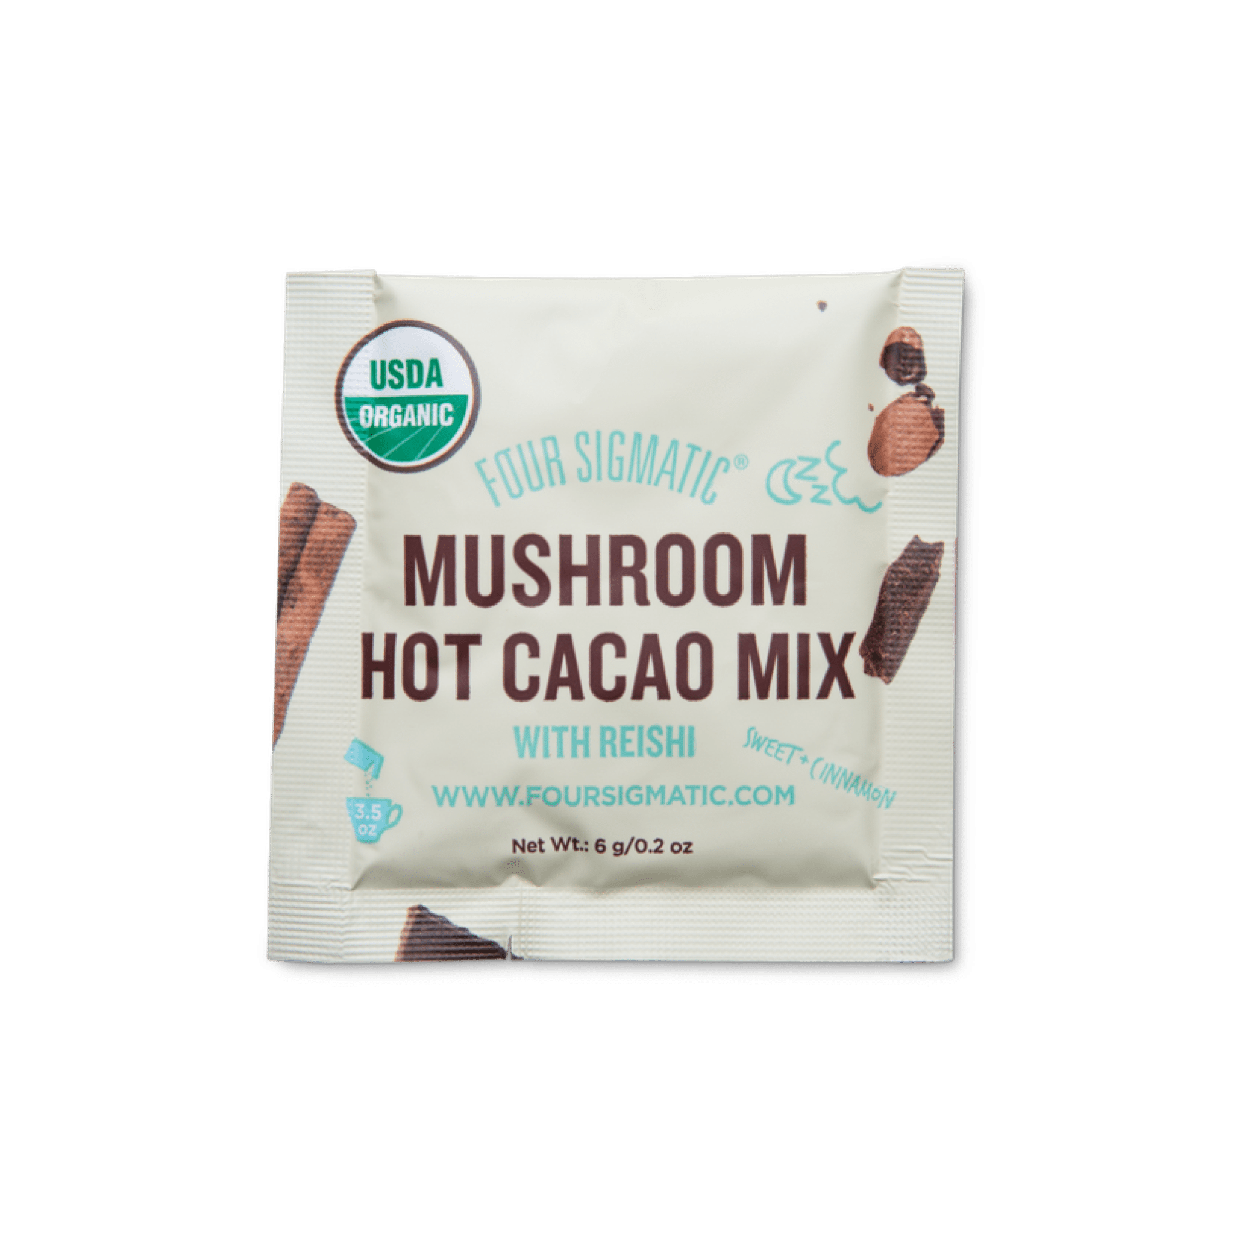 four sigmatic - hot cacao mix with reishi mushroom (packet)